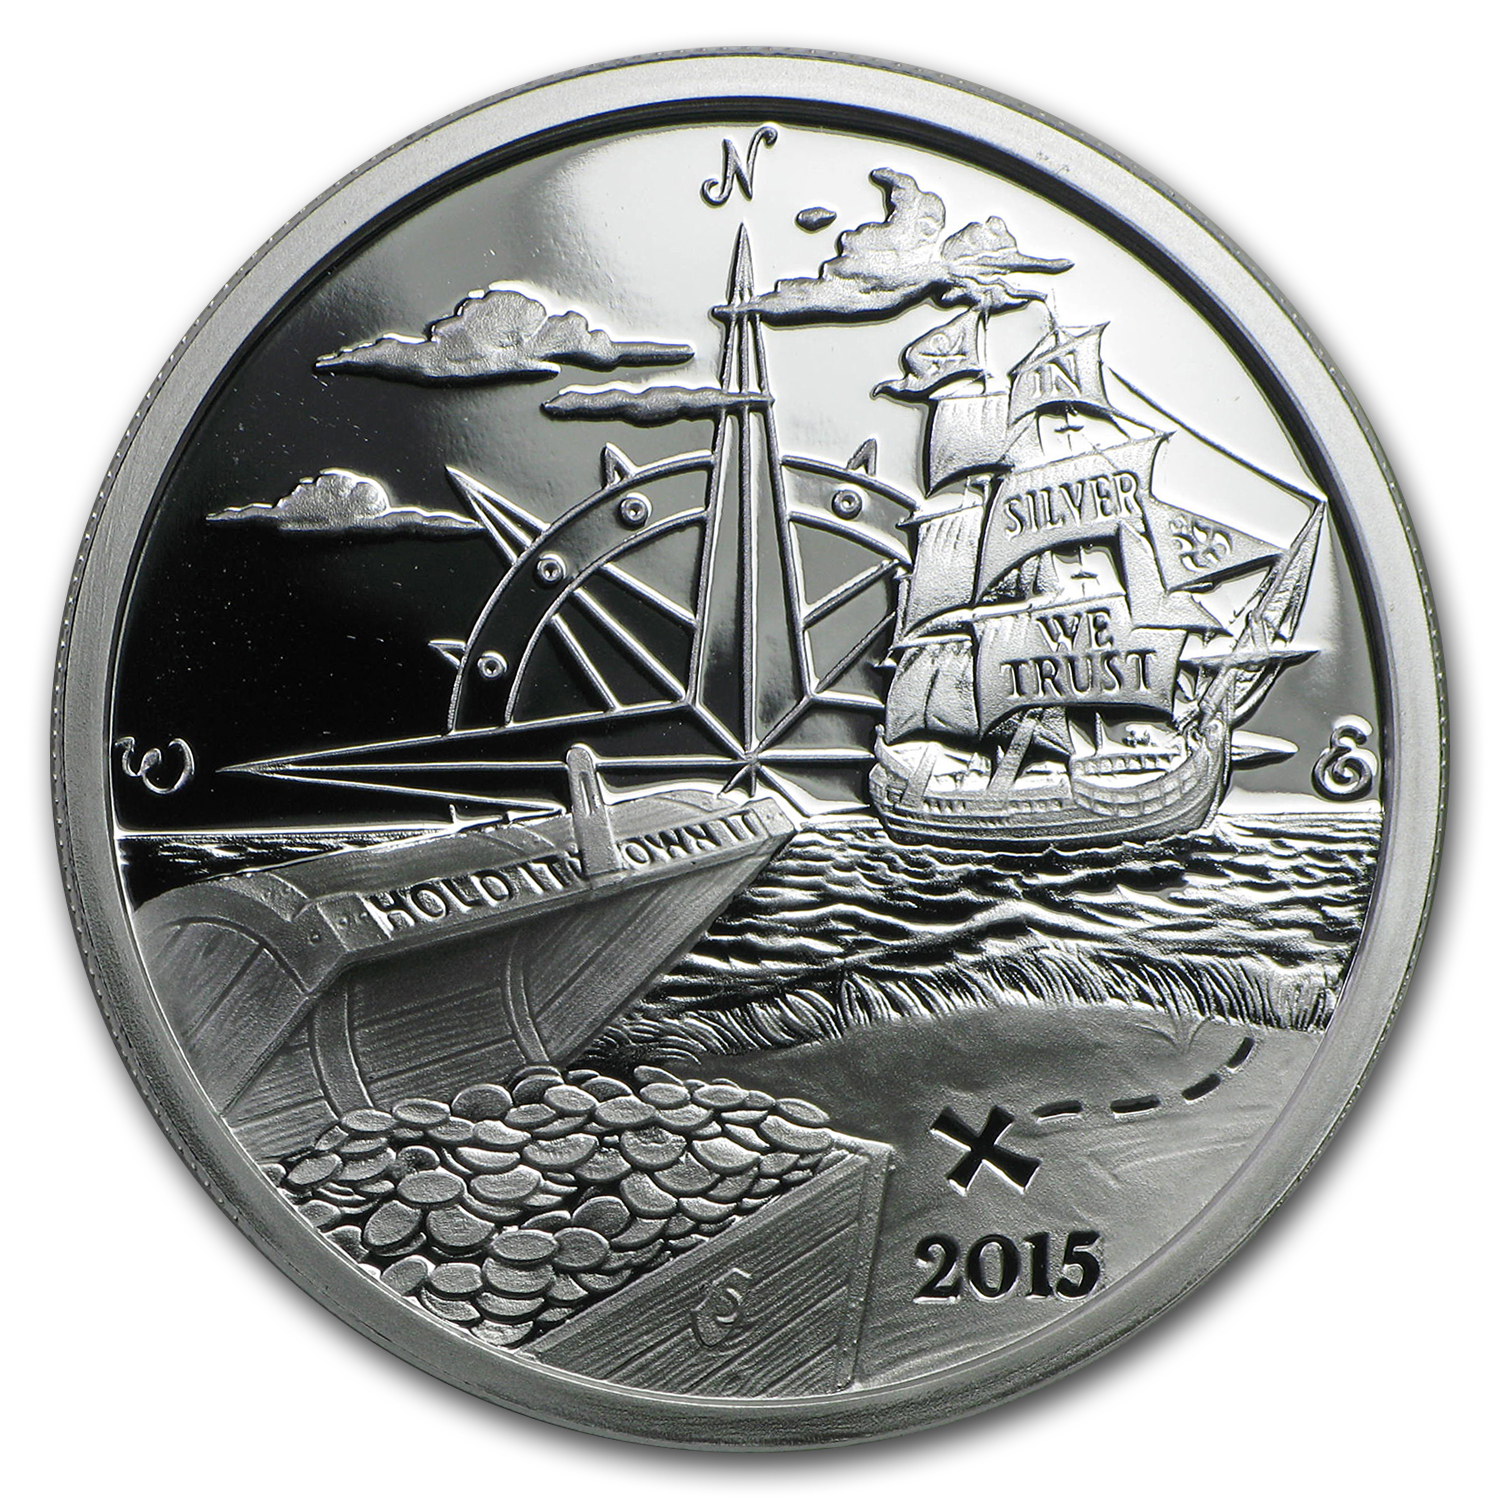 1 oz Silver Proof Round - 2015 Finding Silverbug Island